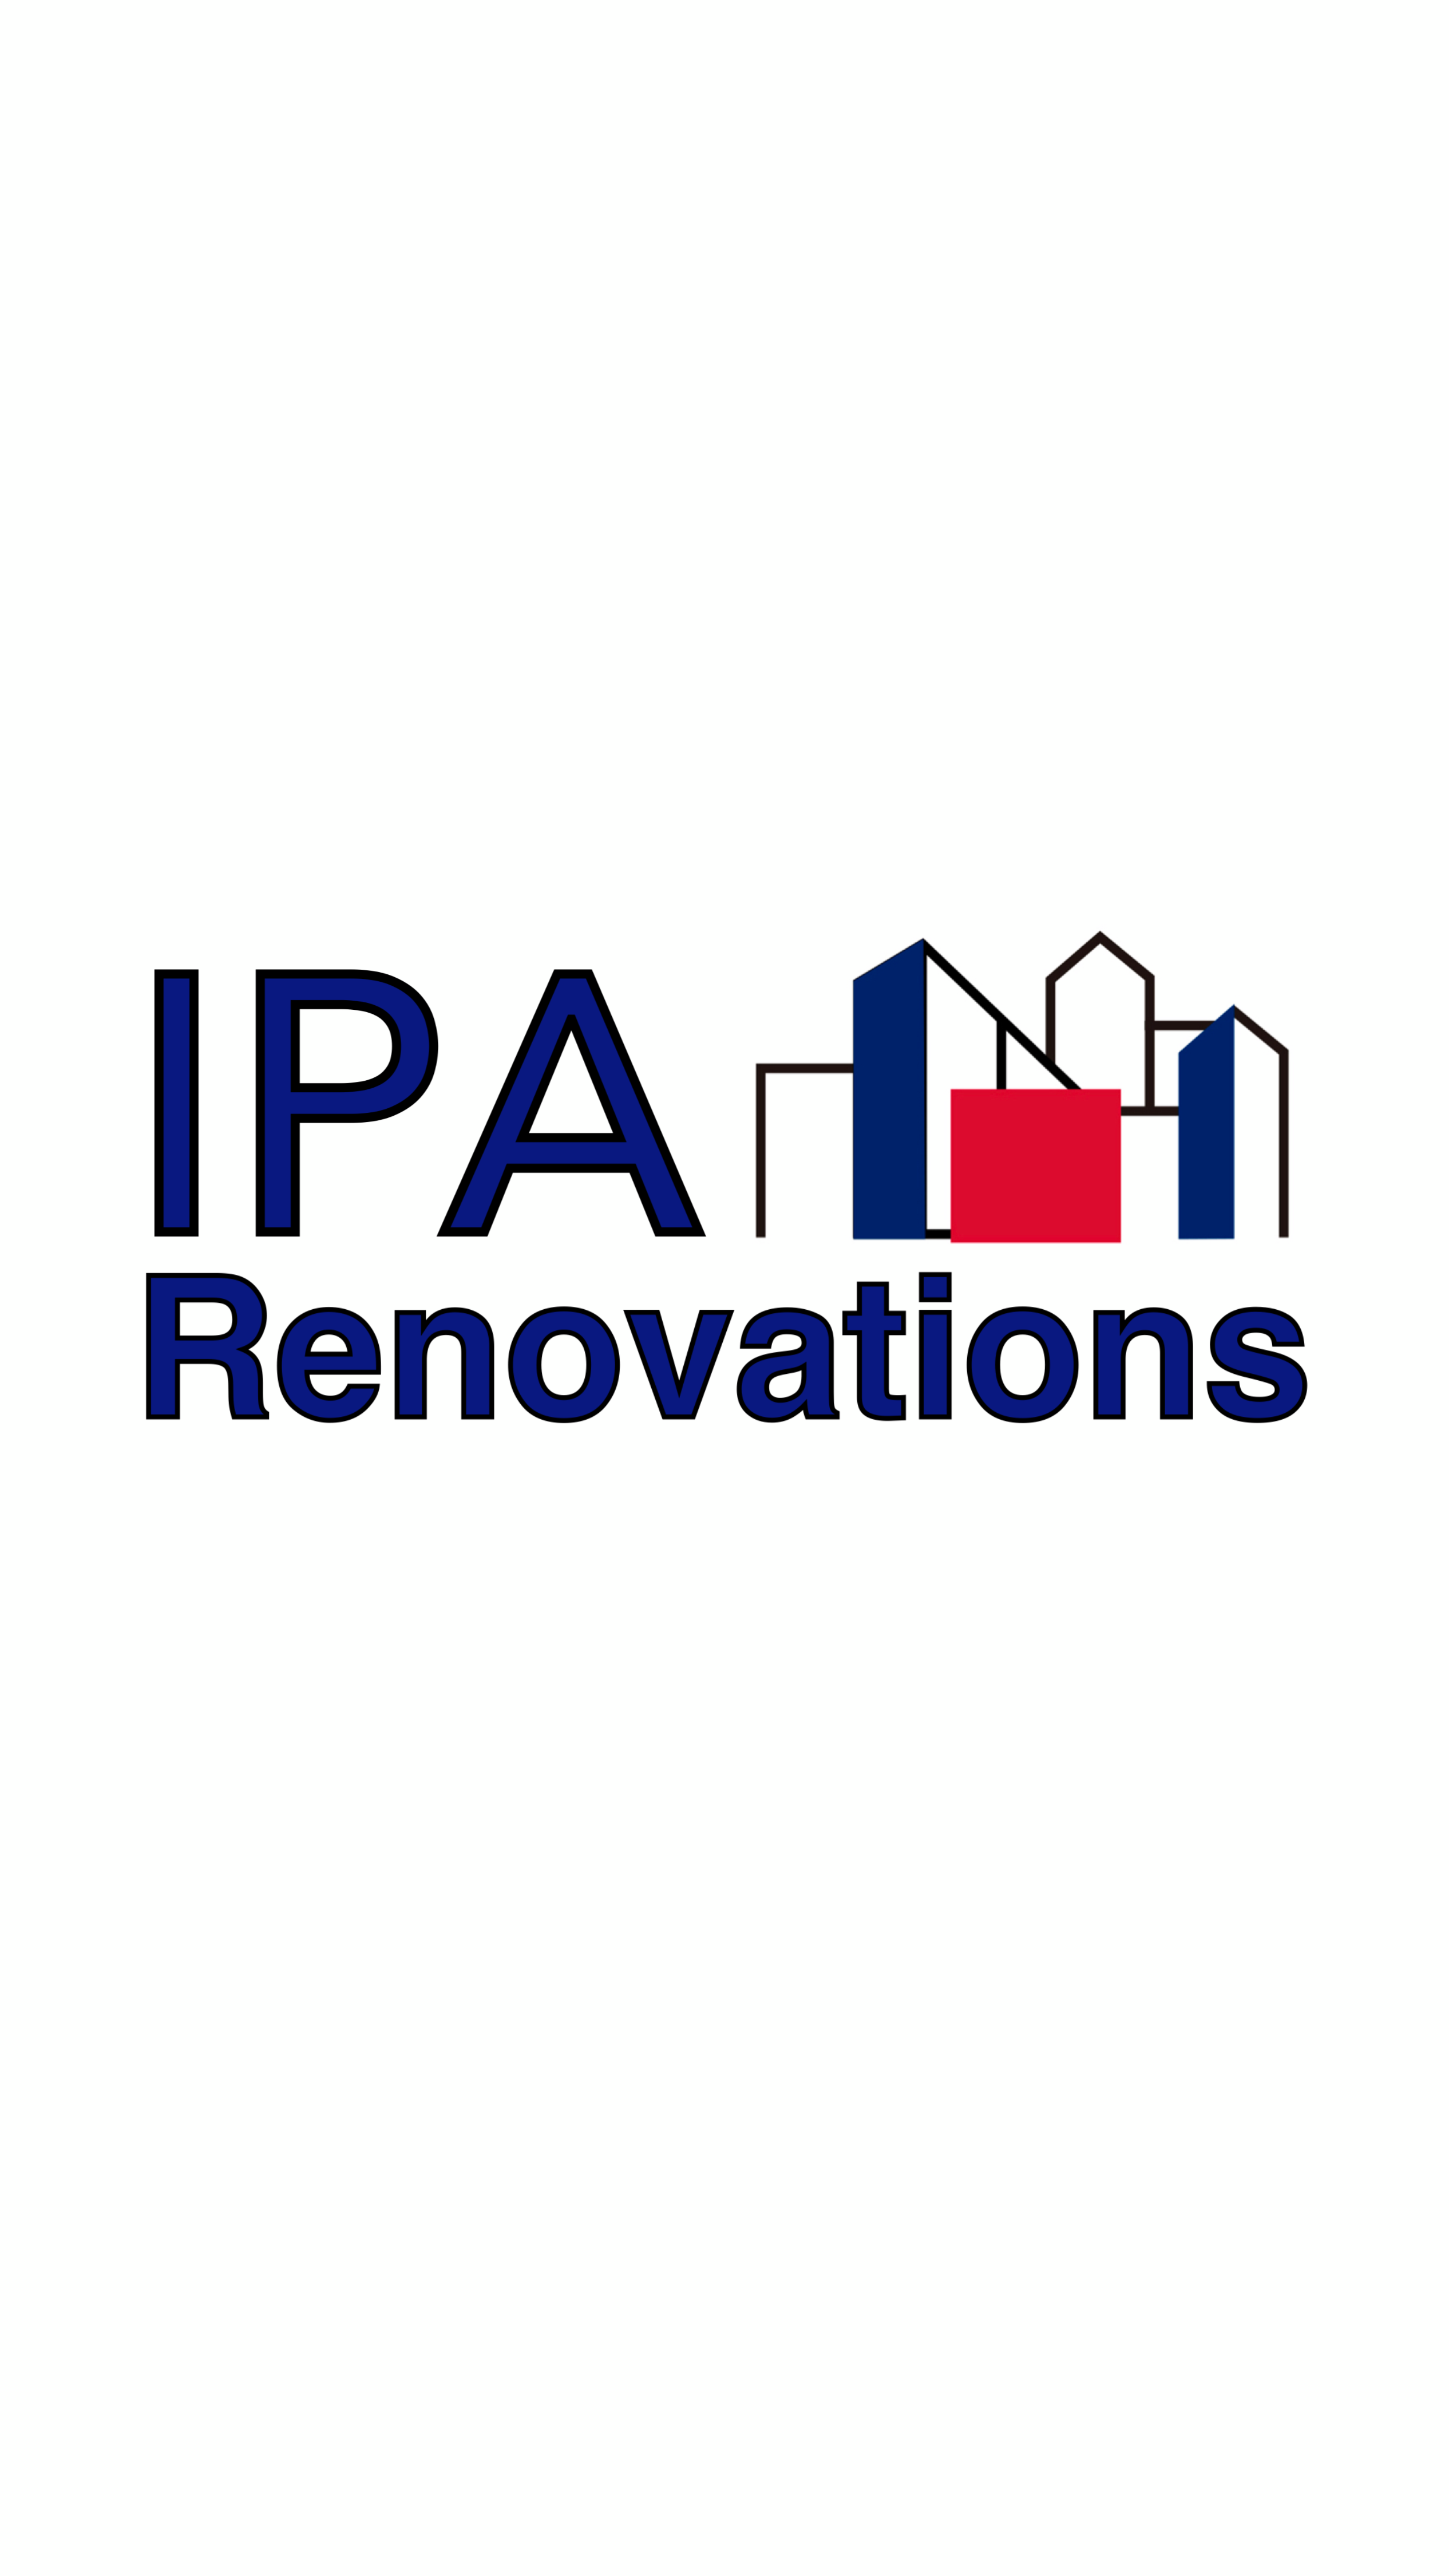 iparenovations